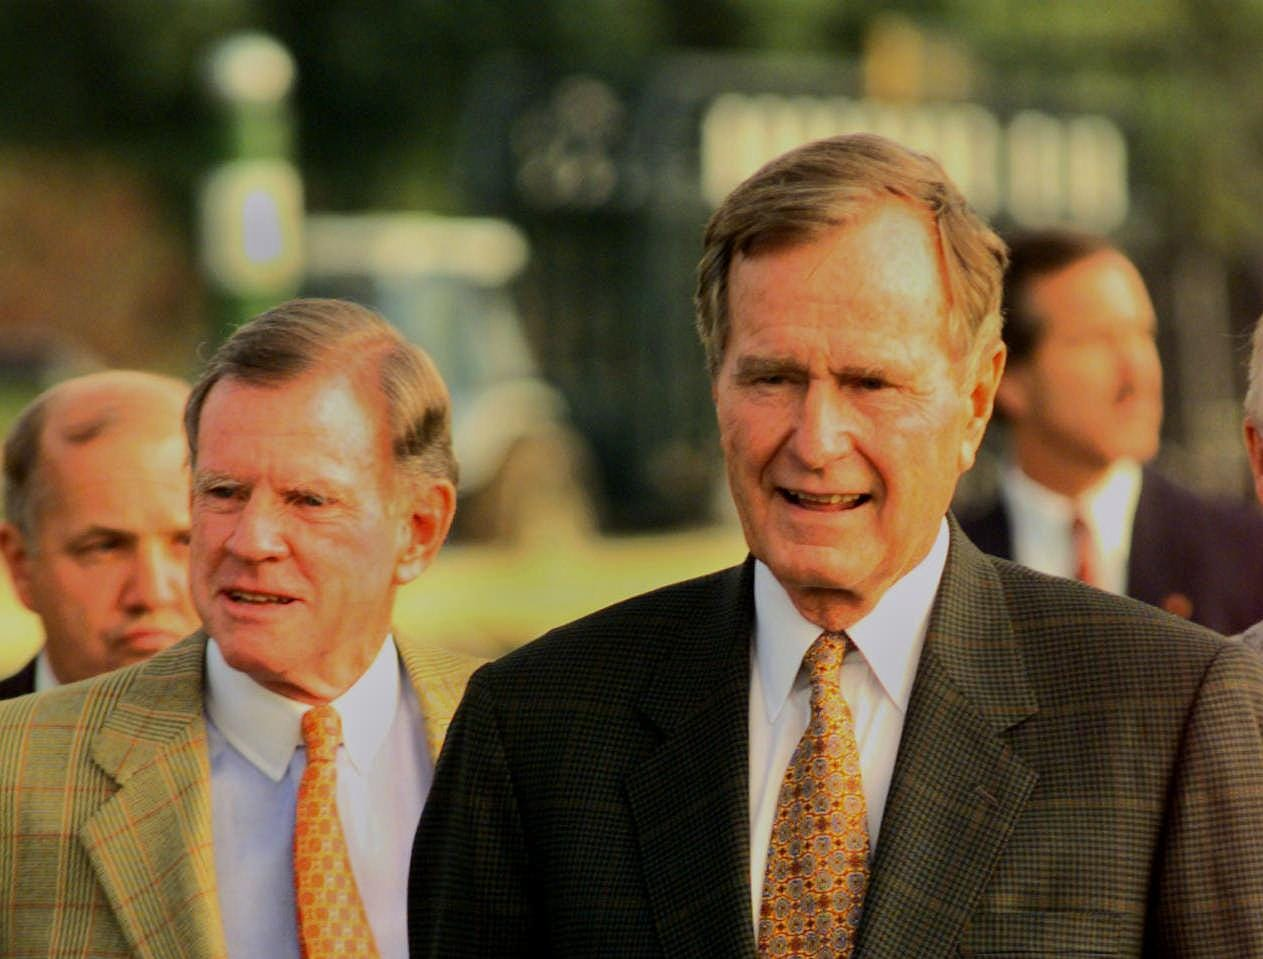 Former President George Bush was on hand at Keeneland to present the first-place trophy in the Lane's End Breeders' Futurity.